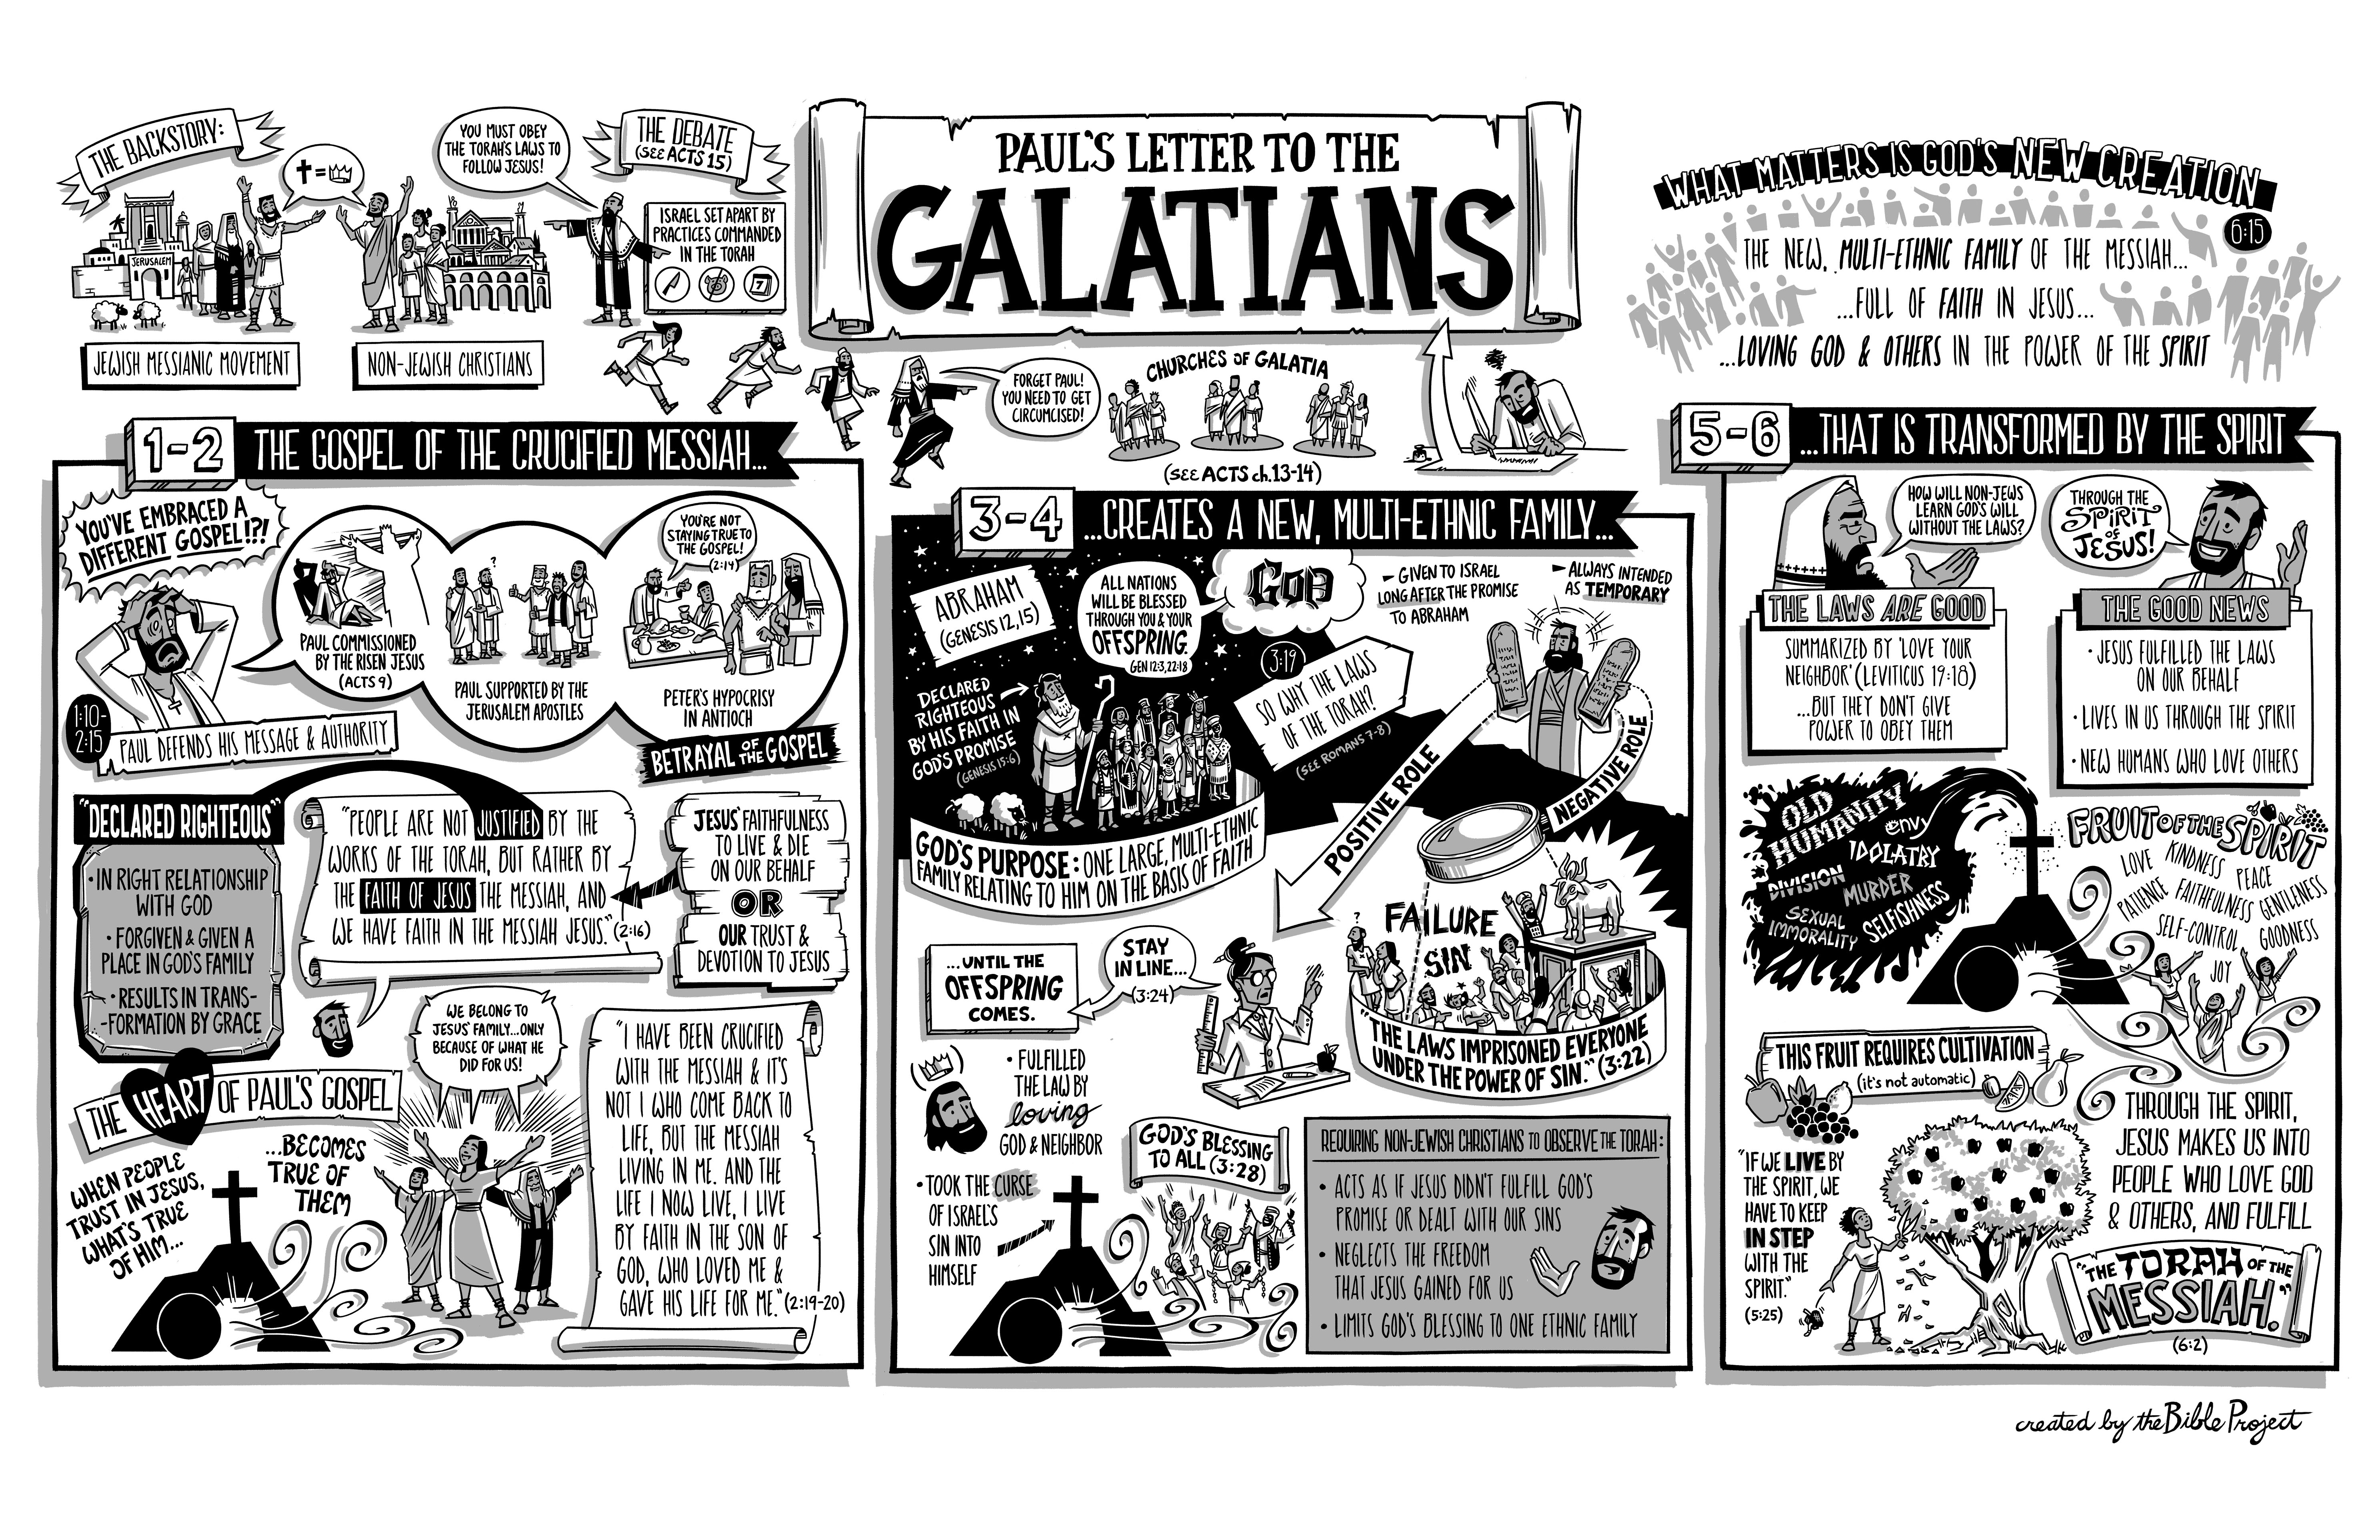 The Book of Galatians shows that justification is by Jesus not